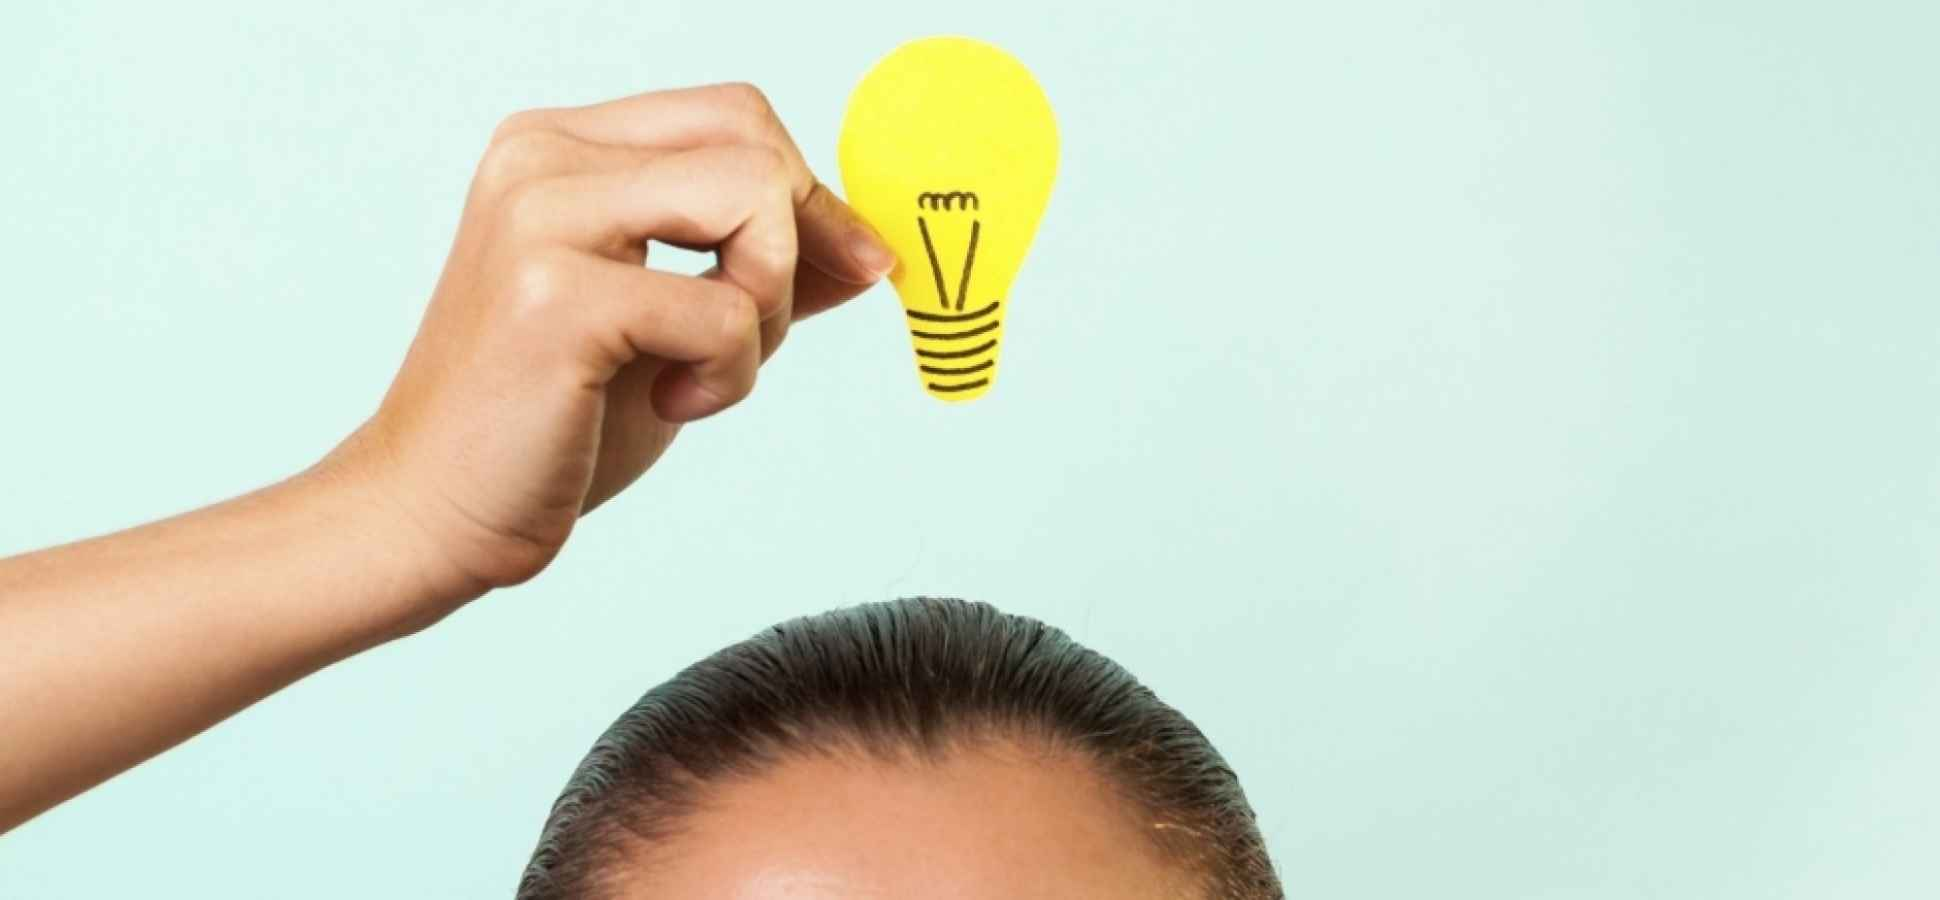 How to Come Up With New Product Ideas Whenever You Want